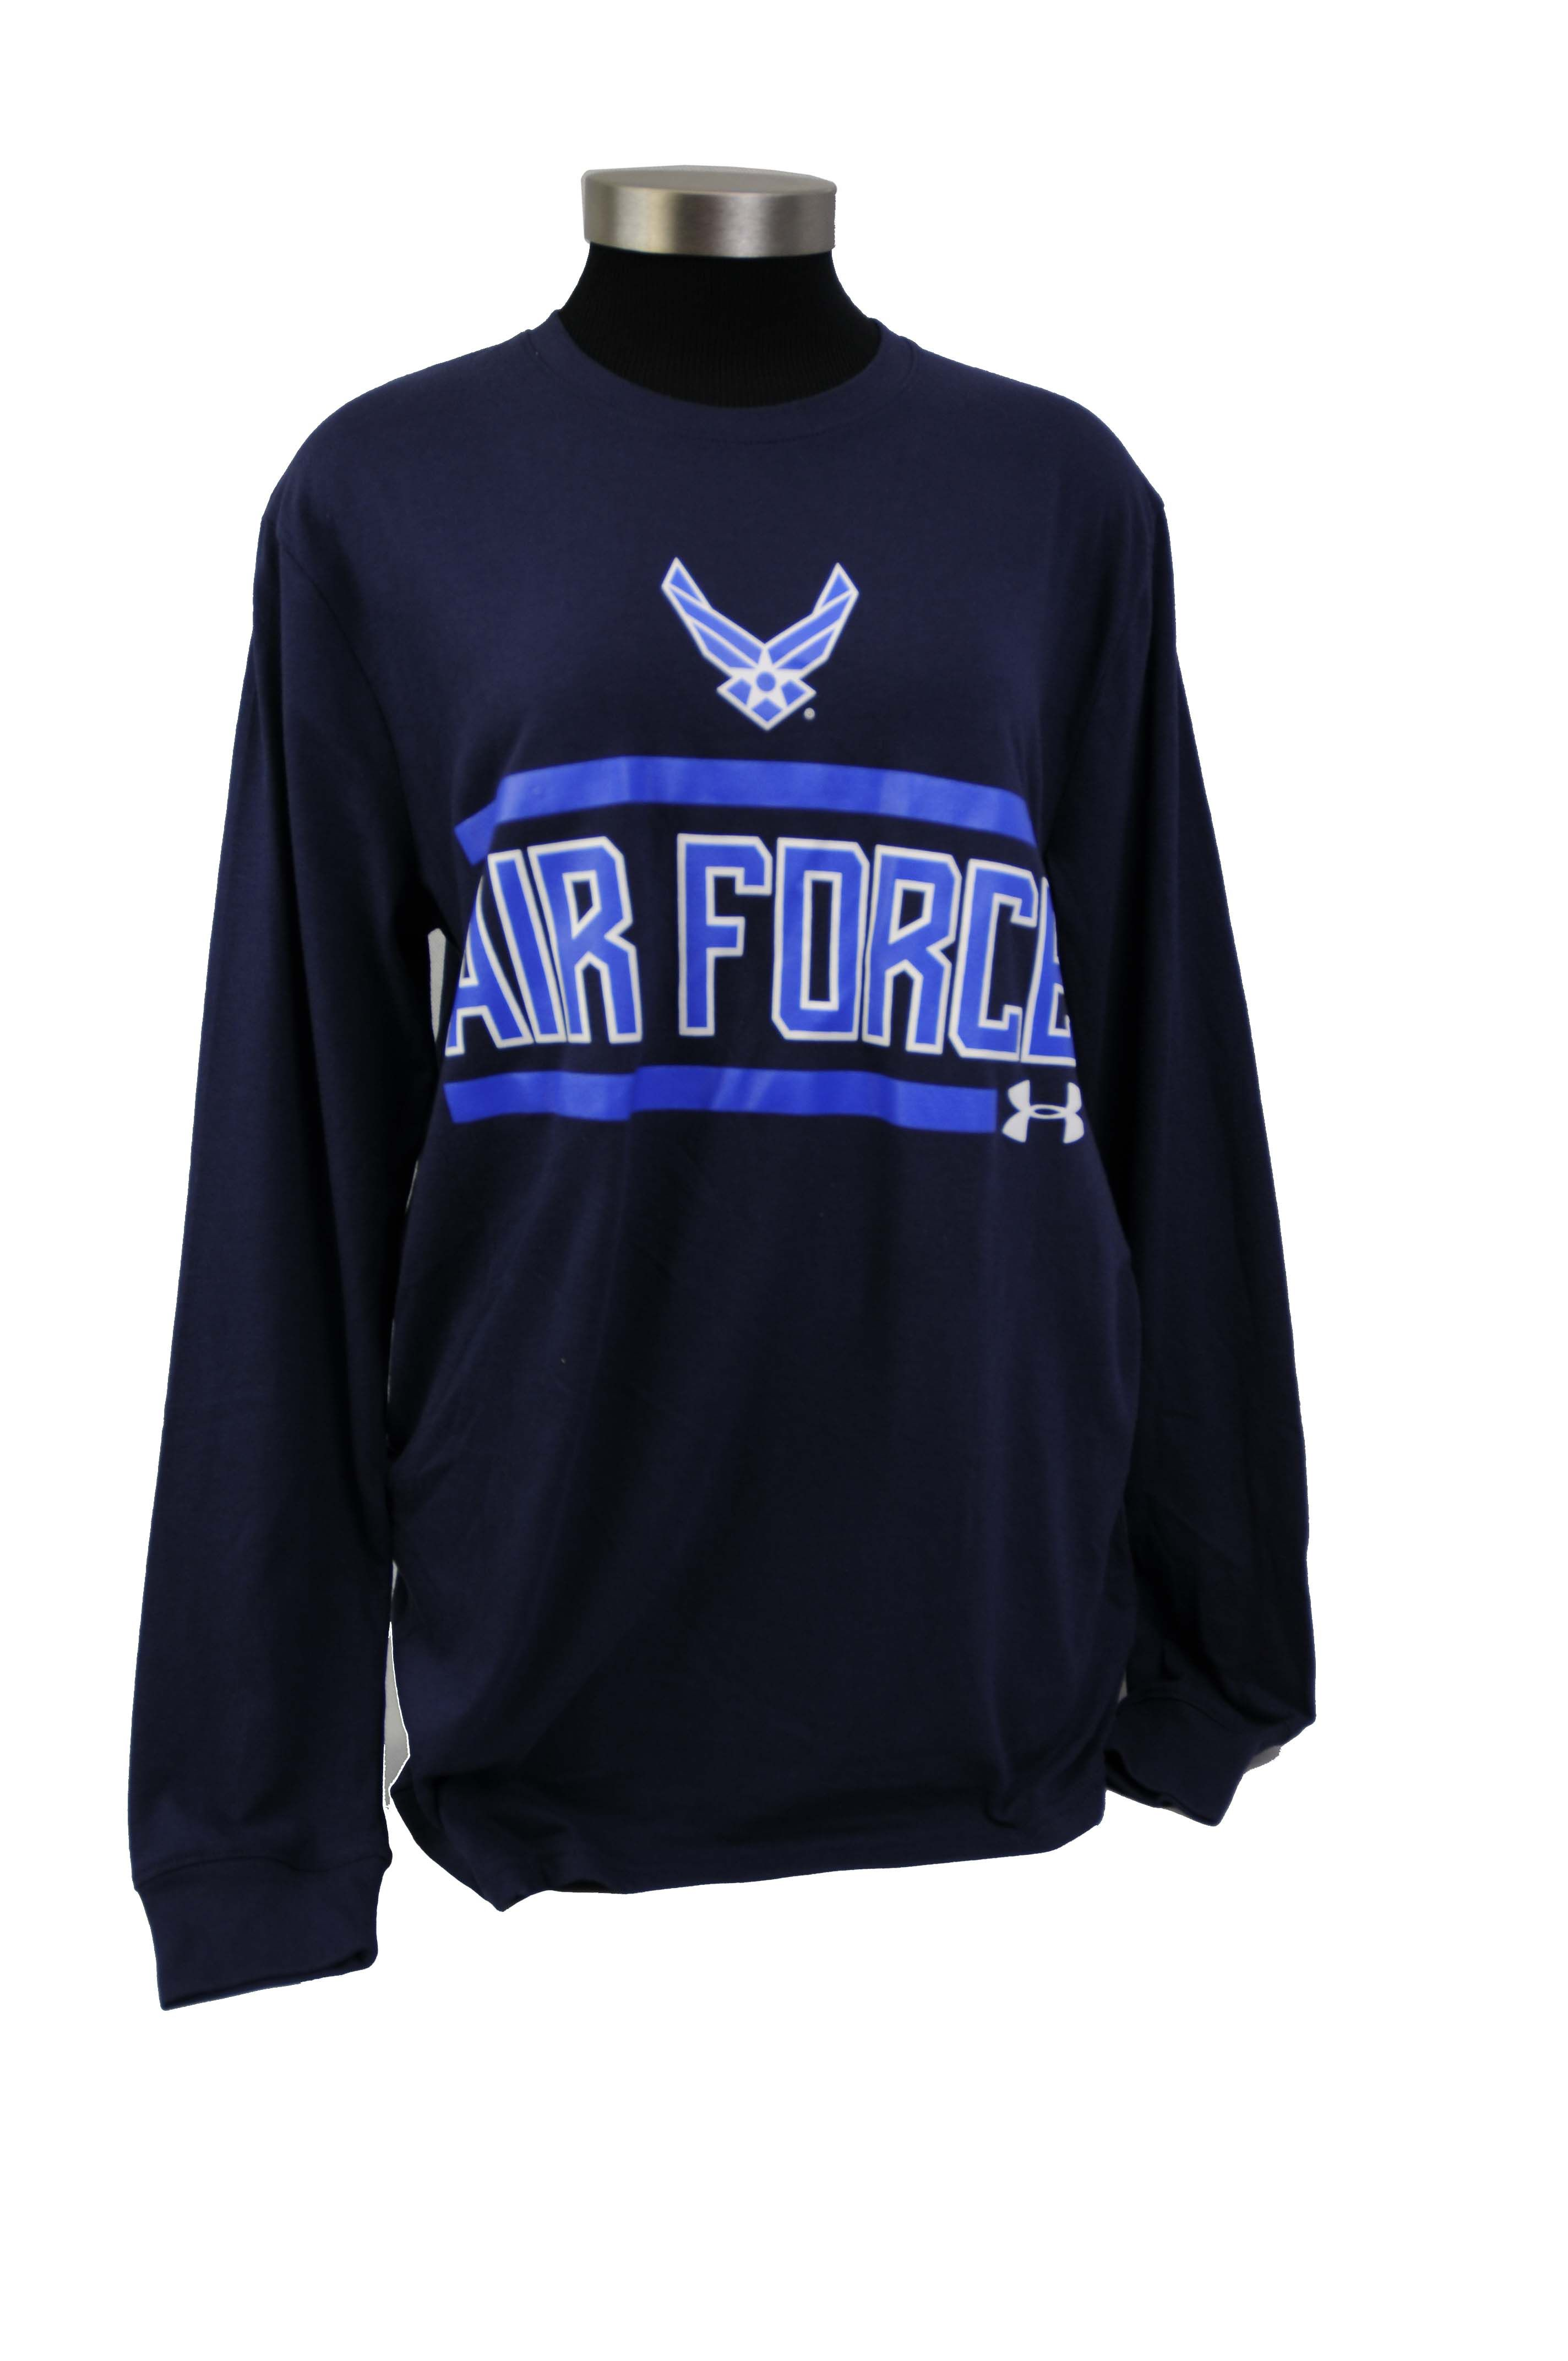 AIR FORCE L/S UNDER ARMOUR Under Armour shirt featuring